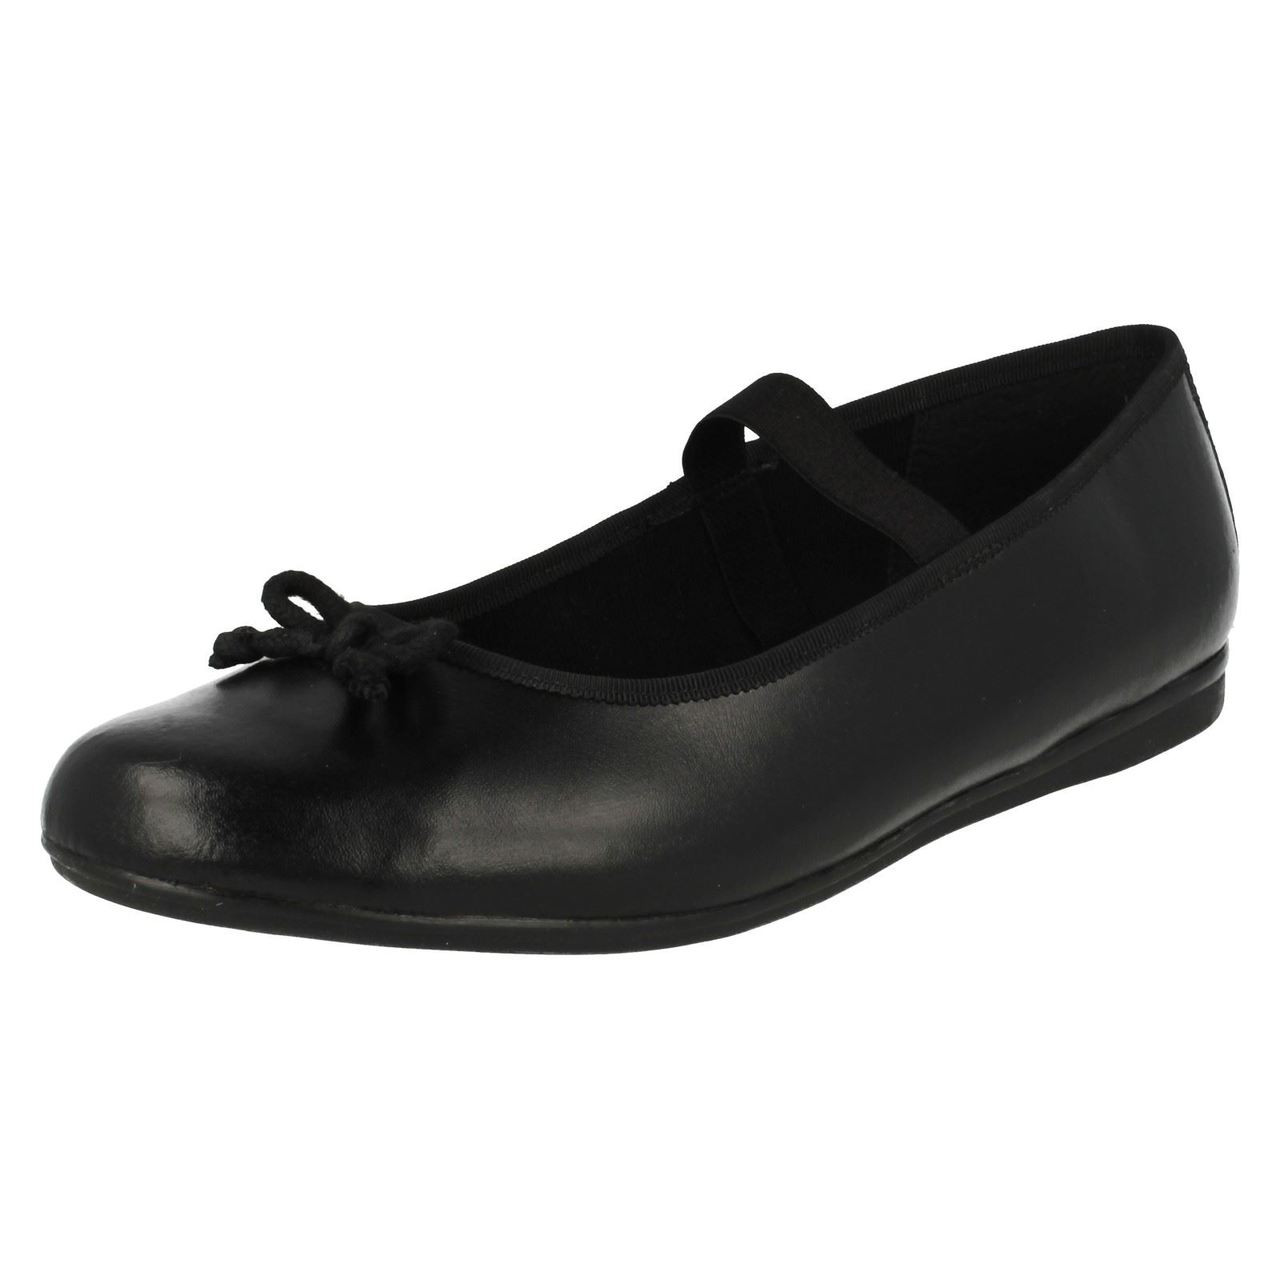 Girls Bootleg By Clarks Patent Toe Cap School Shoes /'Tizz Ace/'